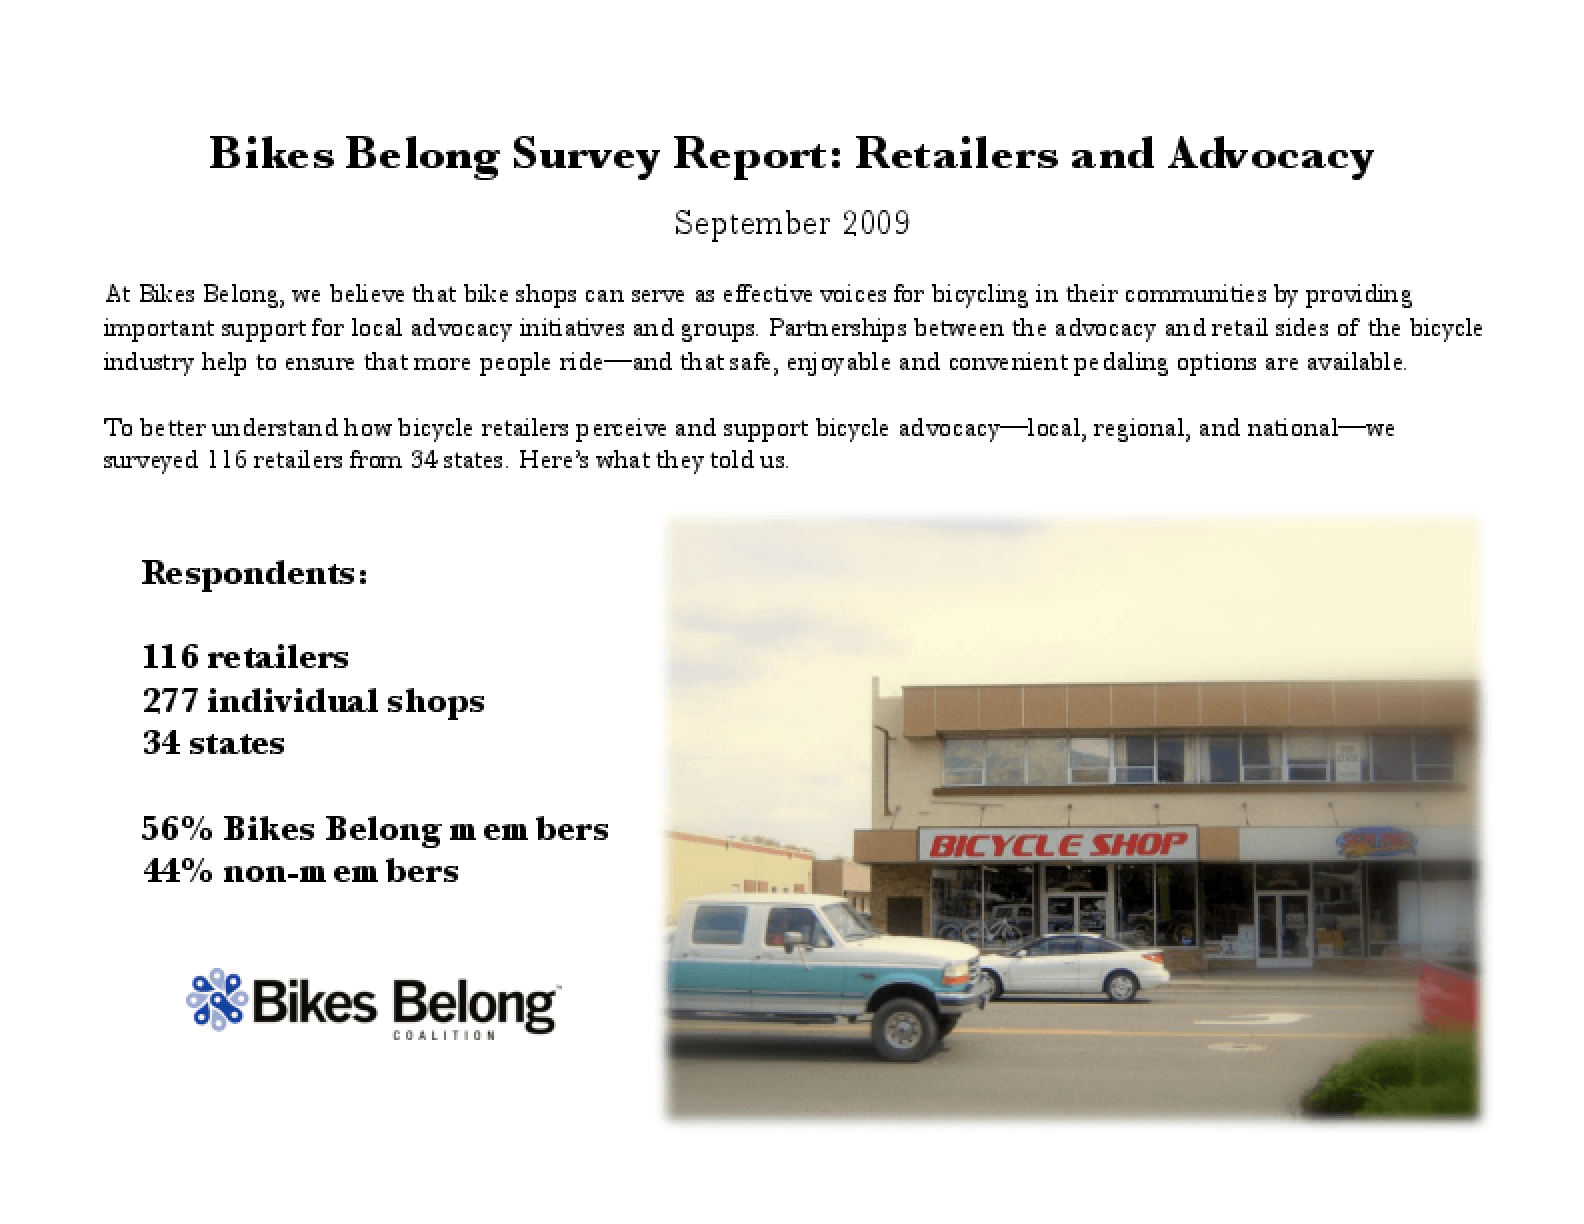 Bicycle Retailers and Advocacy Survey